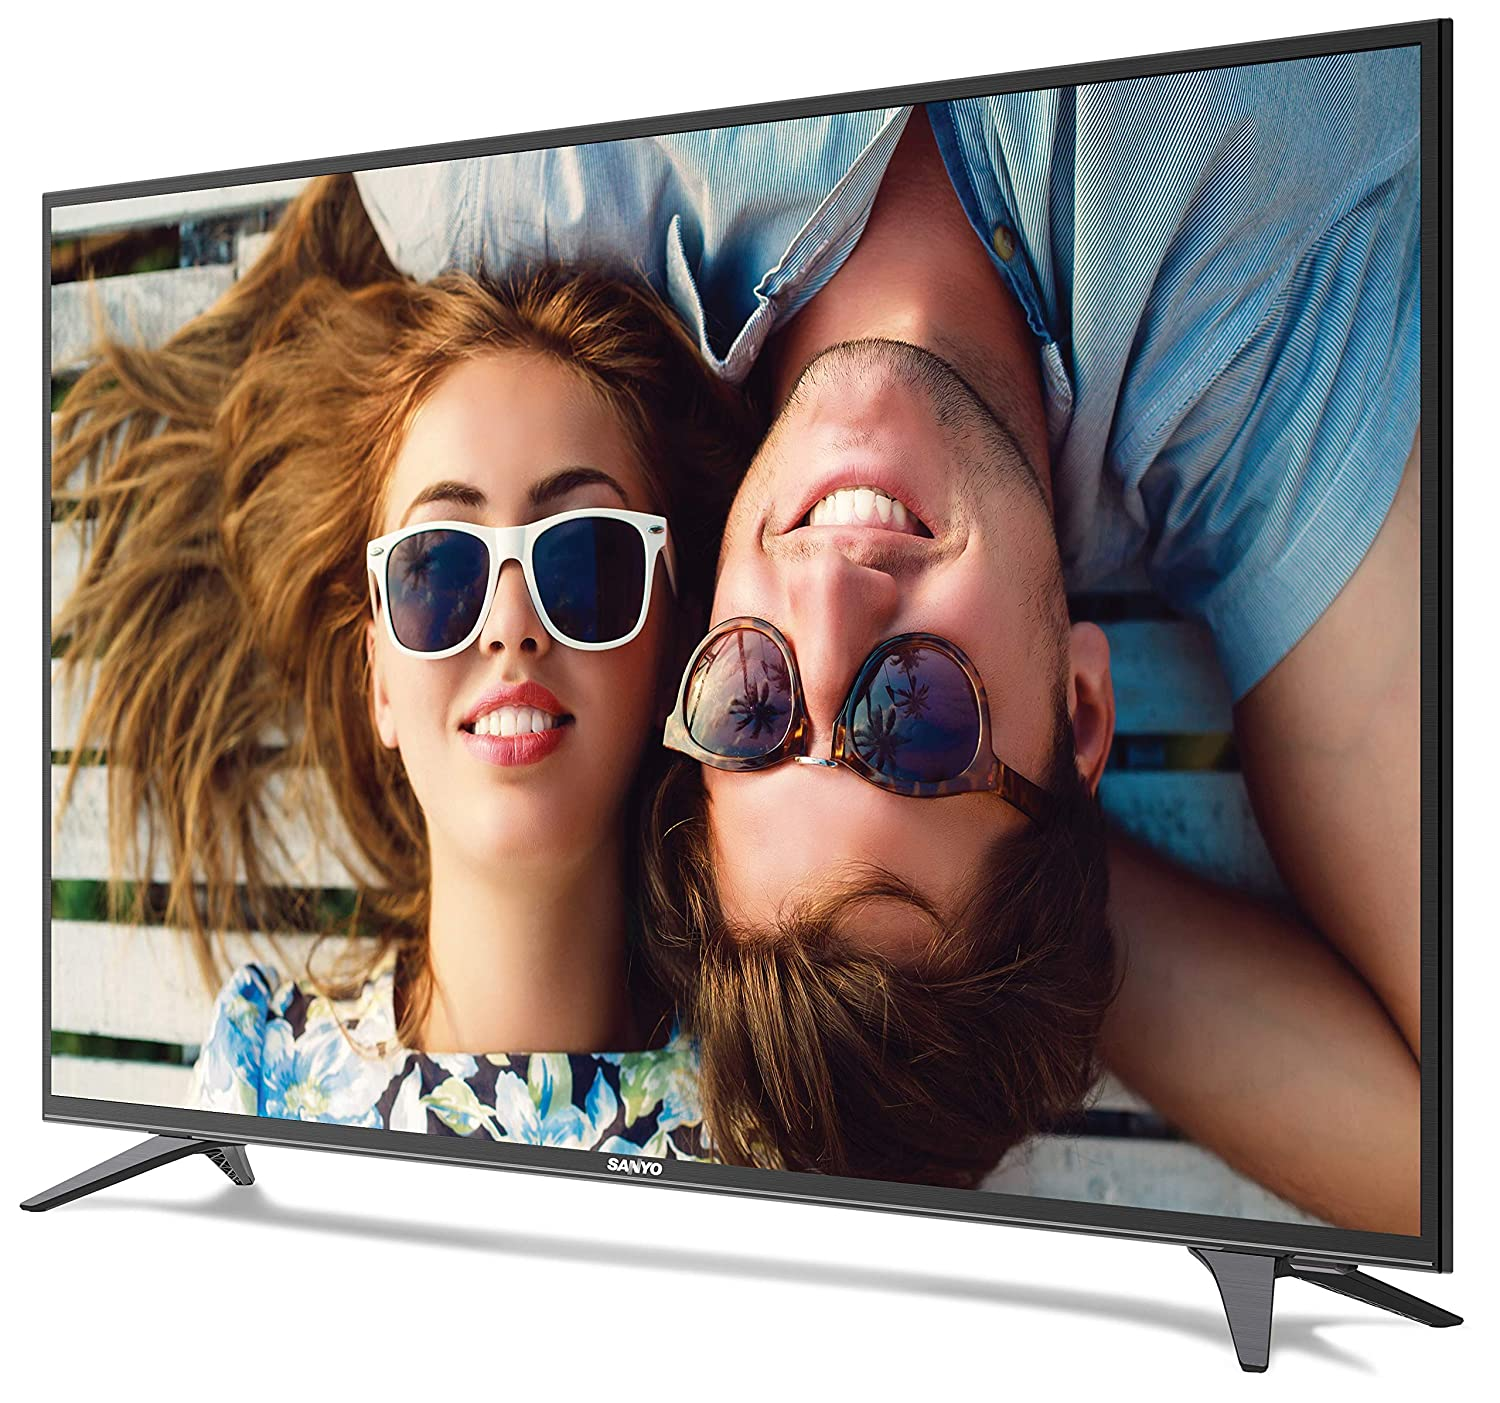 Best of the best 50 inch TV India - Sanyo 123.2 cm (49 inches) NXT XT-49S7200F Full HD LED TV (Metallic)